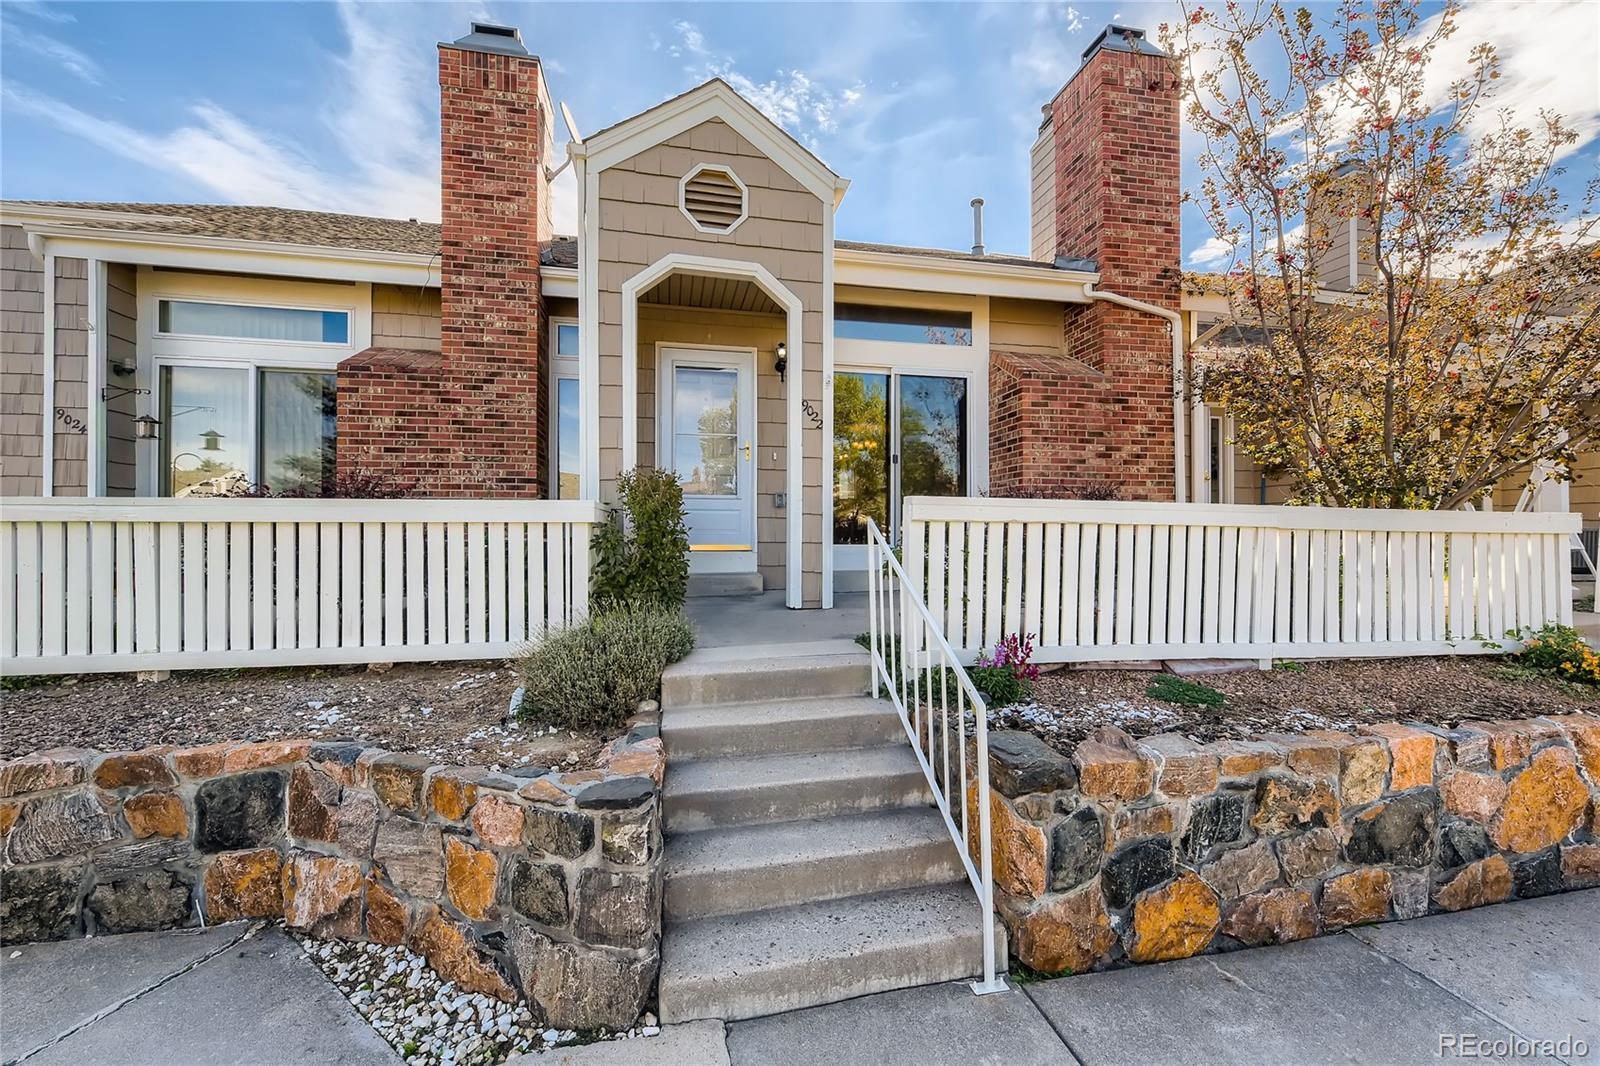 This stunning remodeled 2 bedroom, 2 bathroom townhouse is centrally located in Highlands Ranch! Fall in love when you walk into your living room that includes vaulted ceiling, a fireplace, and natural lighting cascading throughout. Entertain easily in the adjoining formal dining area that flows effortlessly to the kitchen. The gourmet kitchen is a chef's delight with stainless steel appliances, Corian counter tops, and ample cabinet space. An additional bedroom and full bathroom are on the first floor. Upstairs you will immediately notice the loft area, a perfect space to imagine your new home office or sitting room. Retreat to the relaxing primary bedroom that features an updated en suite bathroom and a deep walk-in closet. Your basement connects directly to an attached two-car garage. Use this space for your laundry room with its washer/dryer and utility sink or take advantage of the extra space for storage use or work out area. You are a stone's throw away from some of Highlands Ranch's plethora of restaurants and shopping districts, and nearby access to major roads.